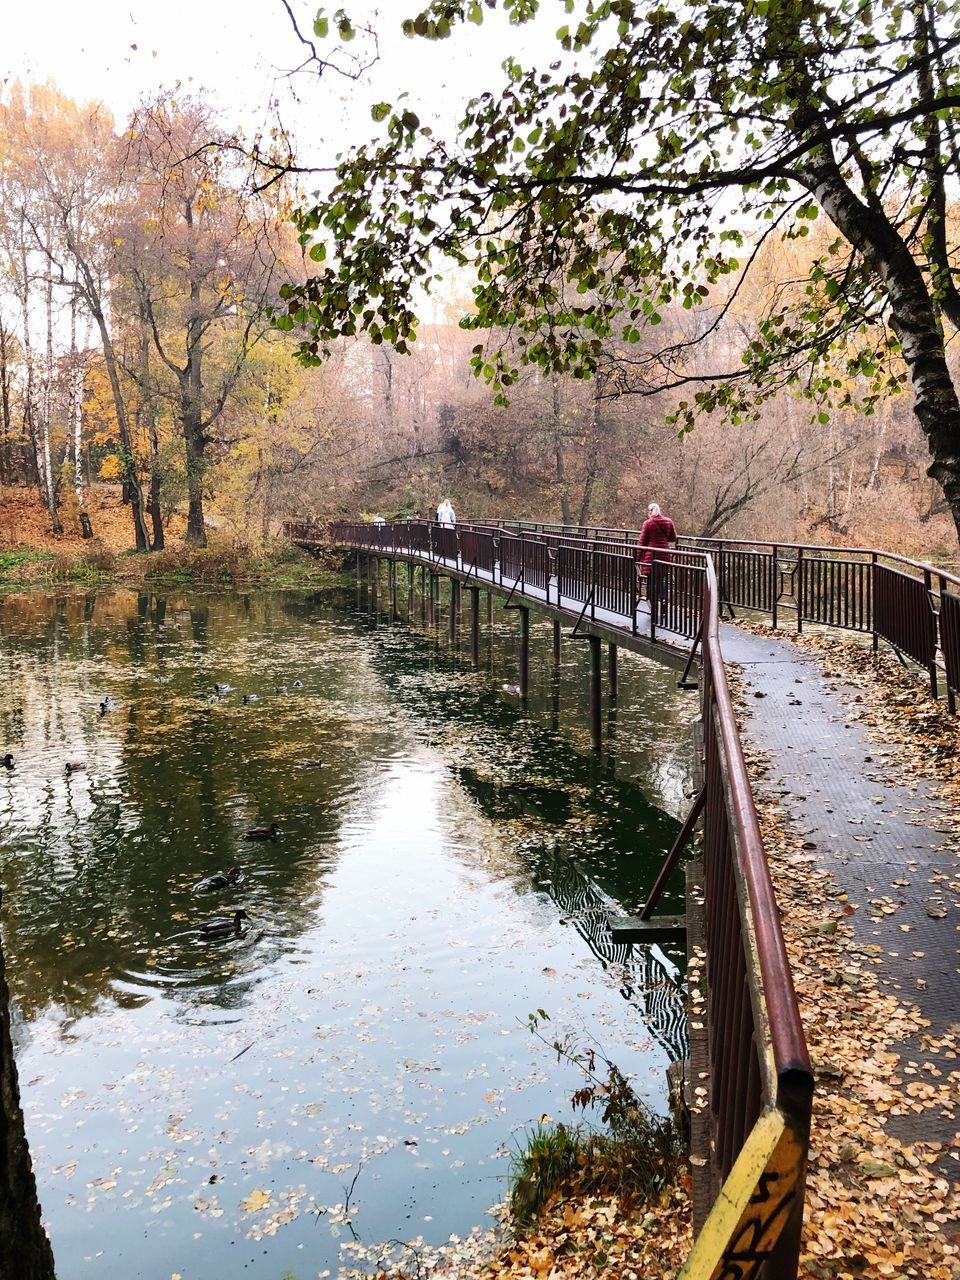 water, tree, plant, connection, bridge, nature, reflection, day, railing, built structure, architecture, bridge - man made structure, canal, transportation, no people, beauty in nature, autumn, footbridge, outdoors, change